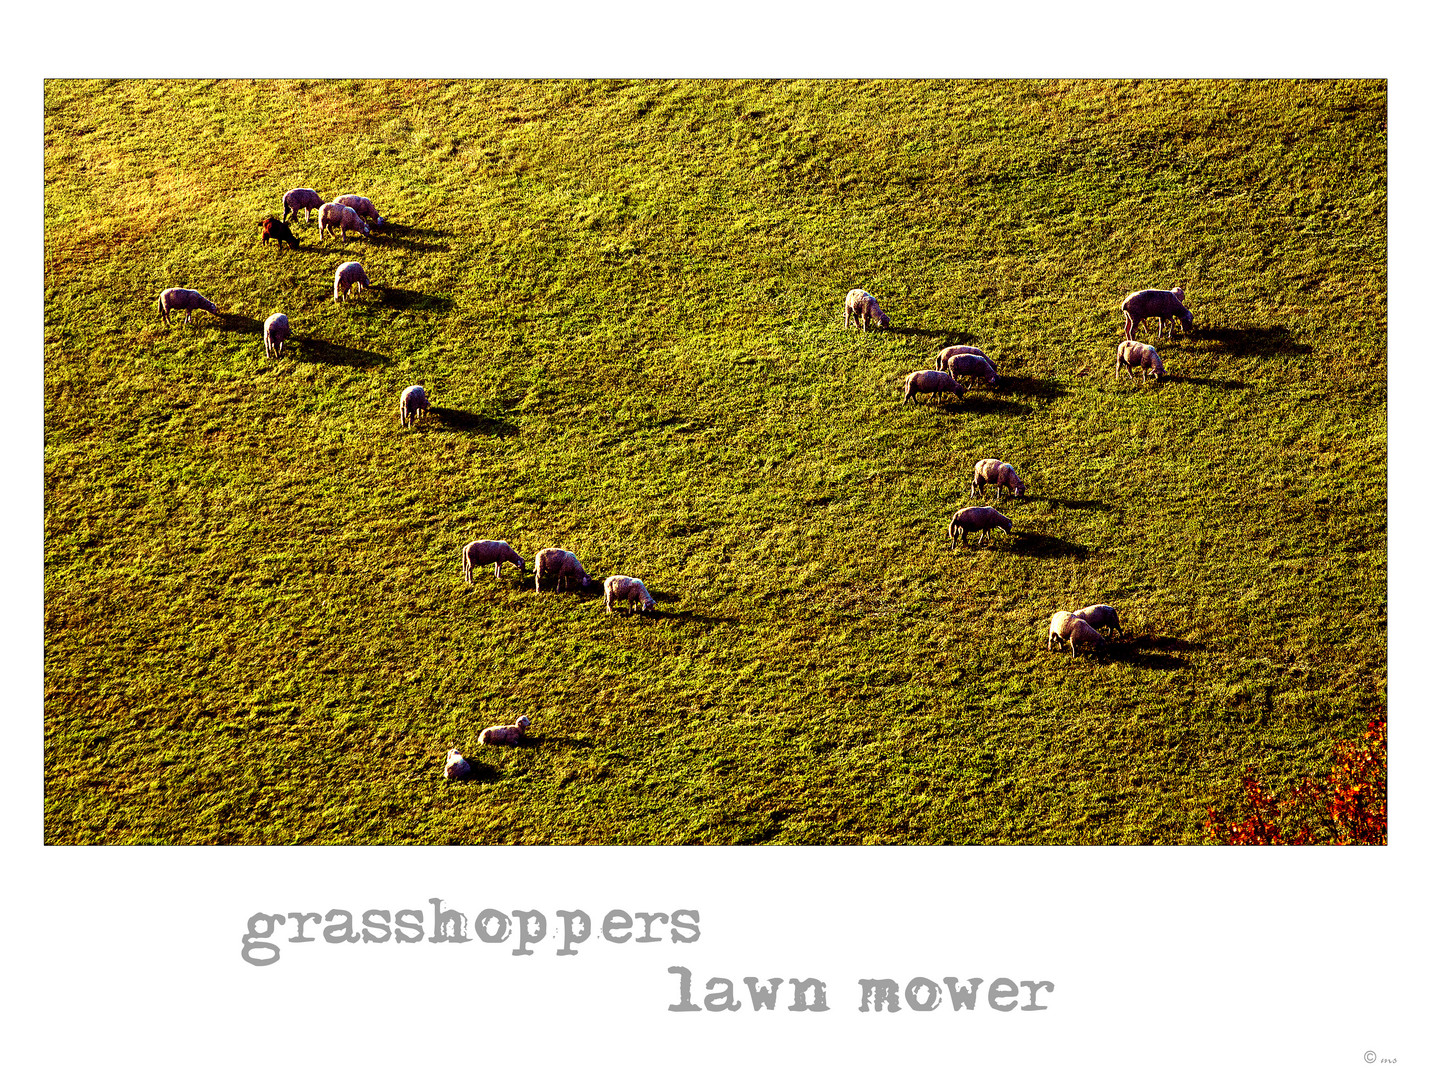 ~ grasshoppers lawn mower ~